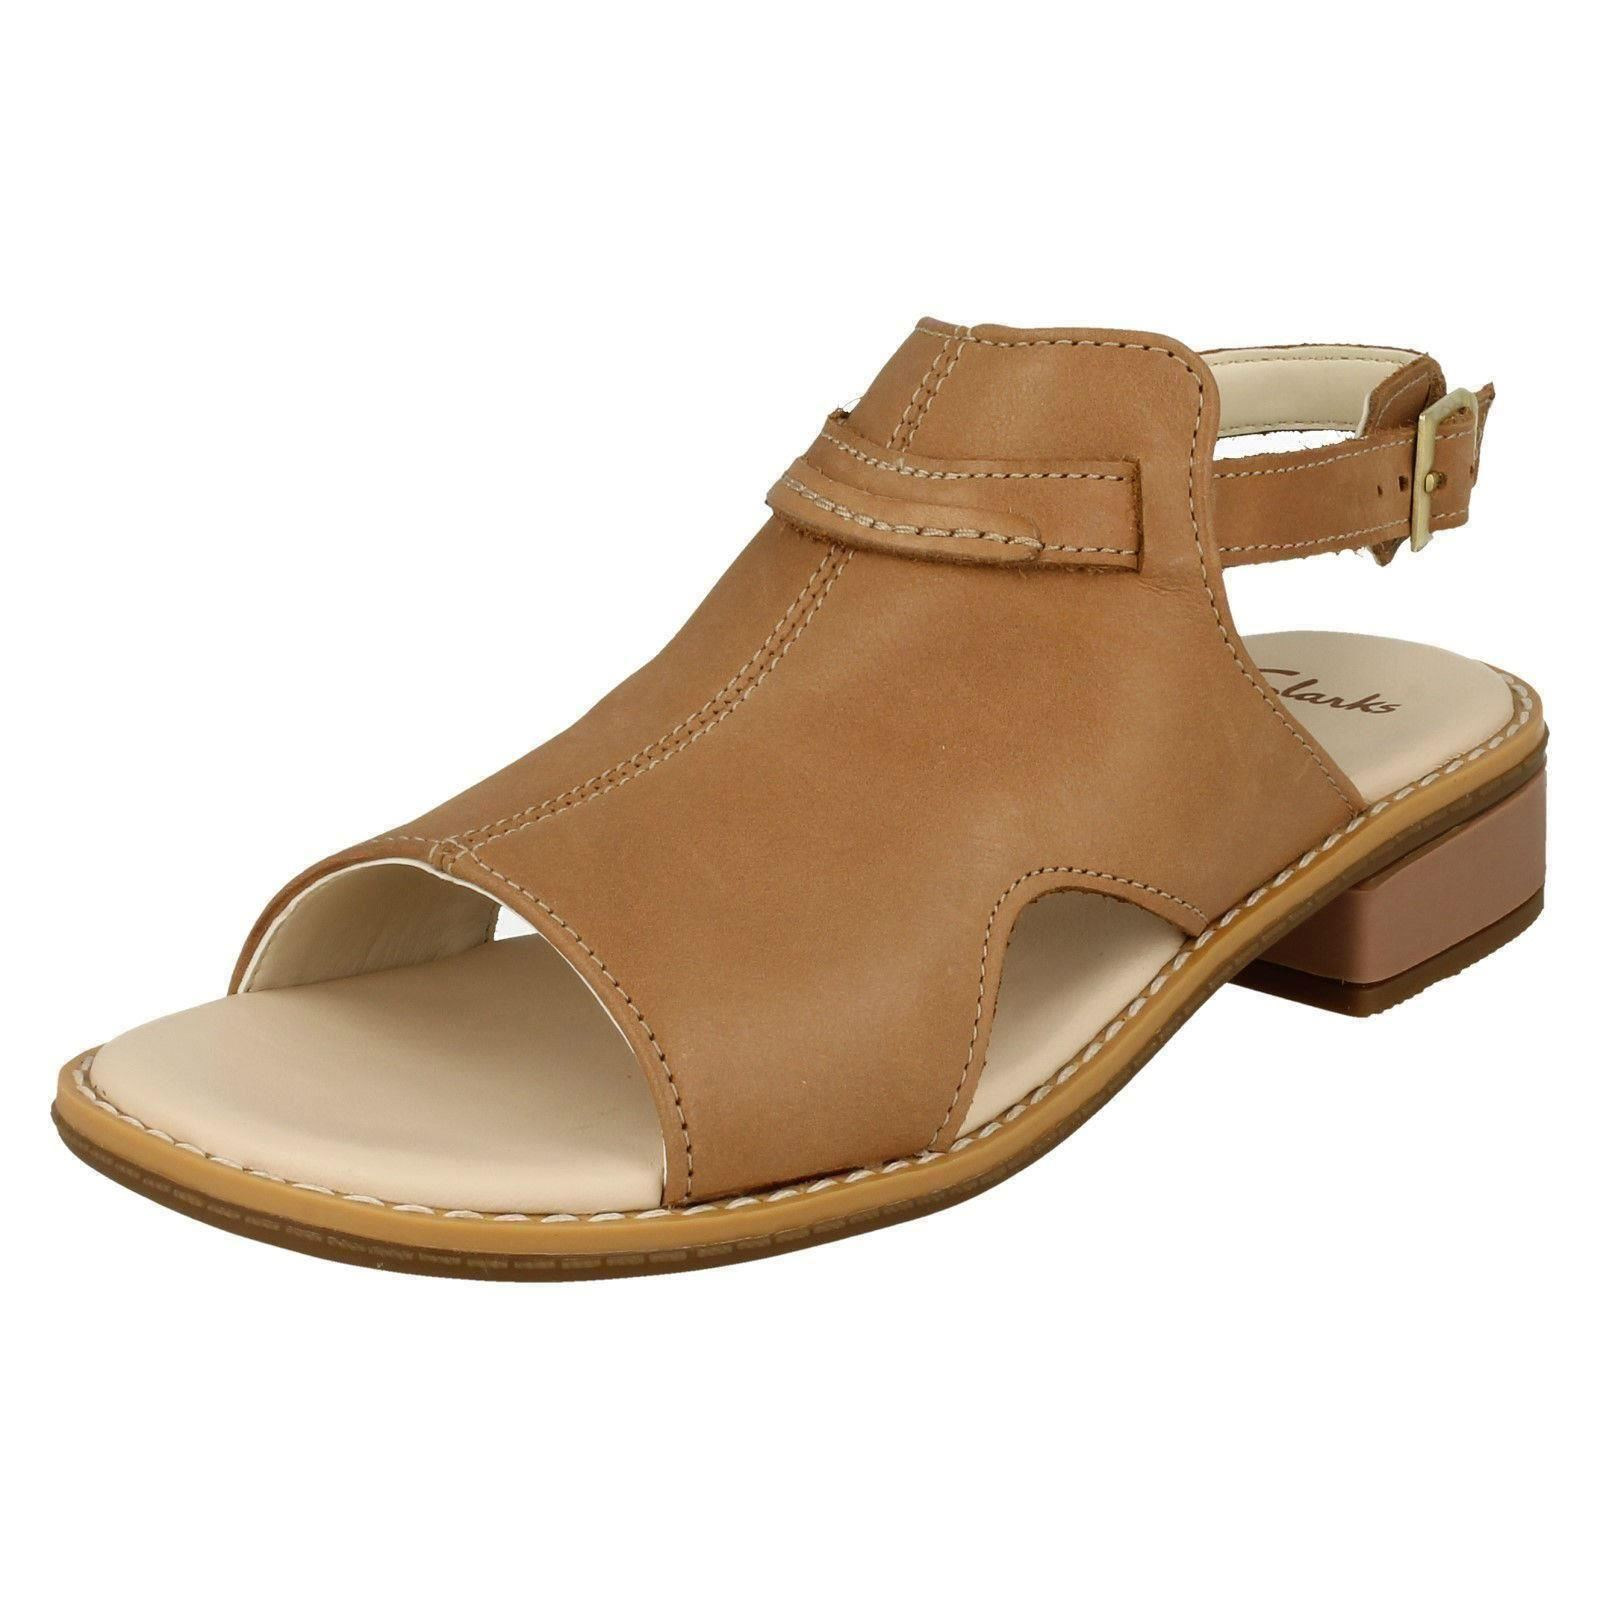 742d15ef8e48 Details about Girls Clarks Low Heel Slingback Sandals Darcy Lily